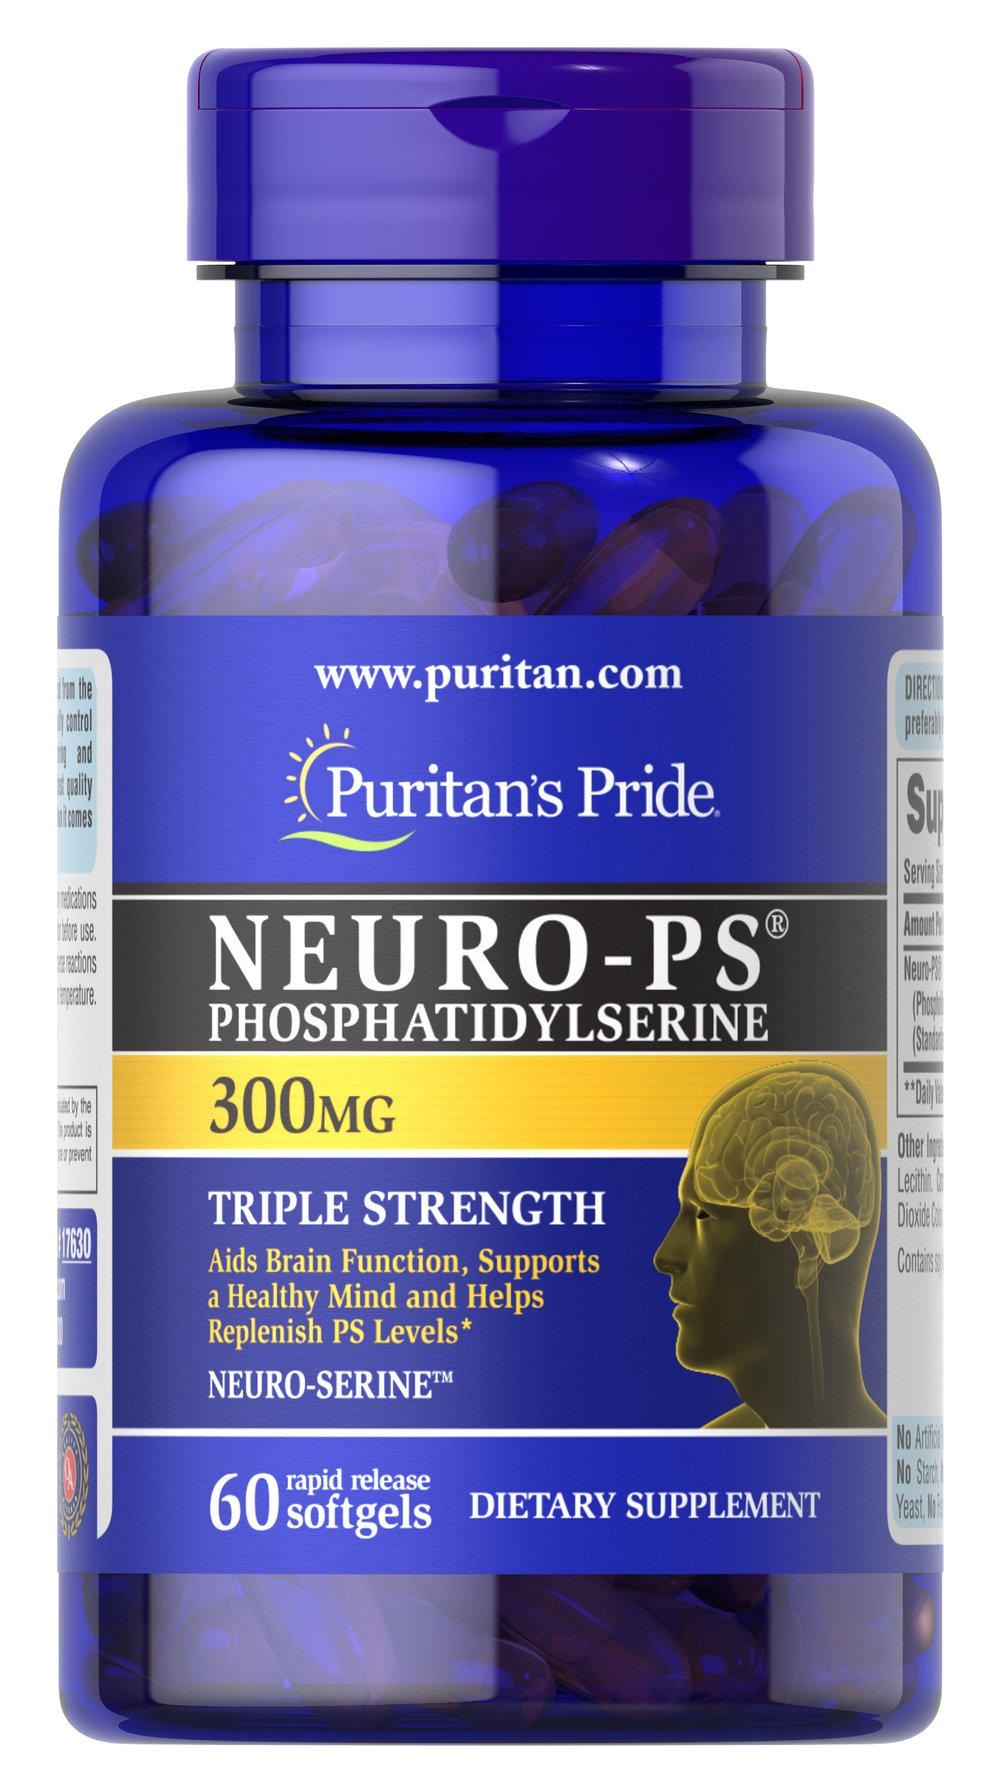 Neuro-PS 300 mg (Phosphatidylserine) <p>Phosphatidylserine (PS):</p><p>Aids Brain Function**</p><p>Supports a Healthy Mind**</p><p>Helps Replenish PS levels**</p><p>Very limited and preliminary scientific research suggests that PS may reduce the risk of cognitive dysfunction in the elderly. The FDA concludes that there is  little scientific evidence supporting this claim.</p><p>Available in 100, 200 and 300 milligram potencies<